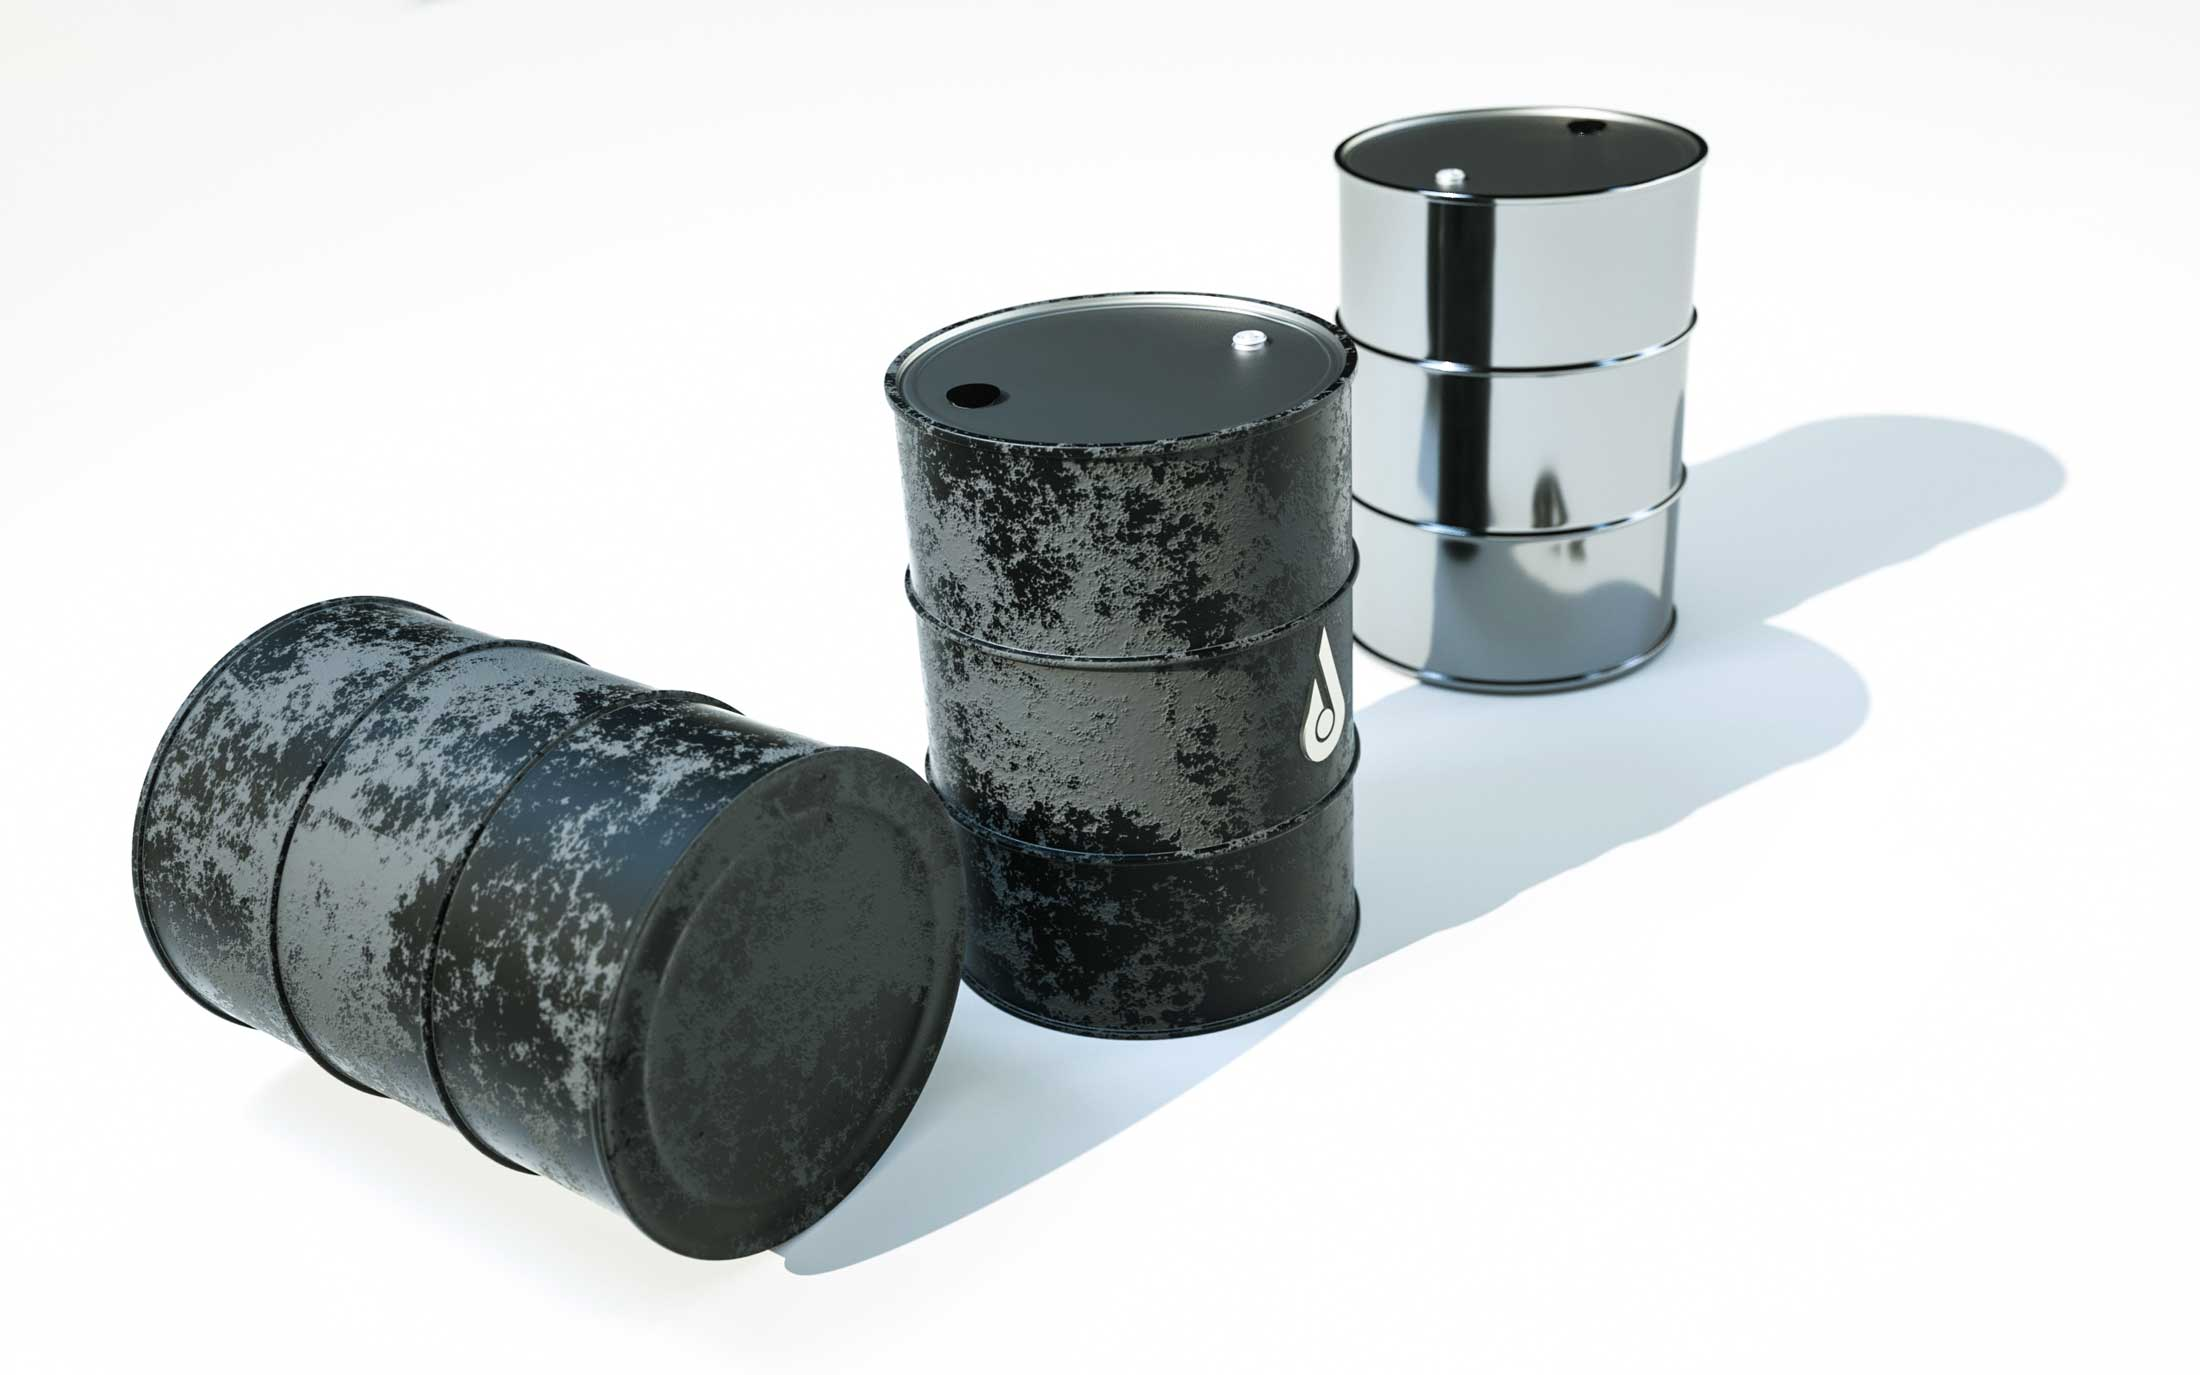 Industrial Design | Realistic 3D Models, Textures and